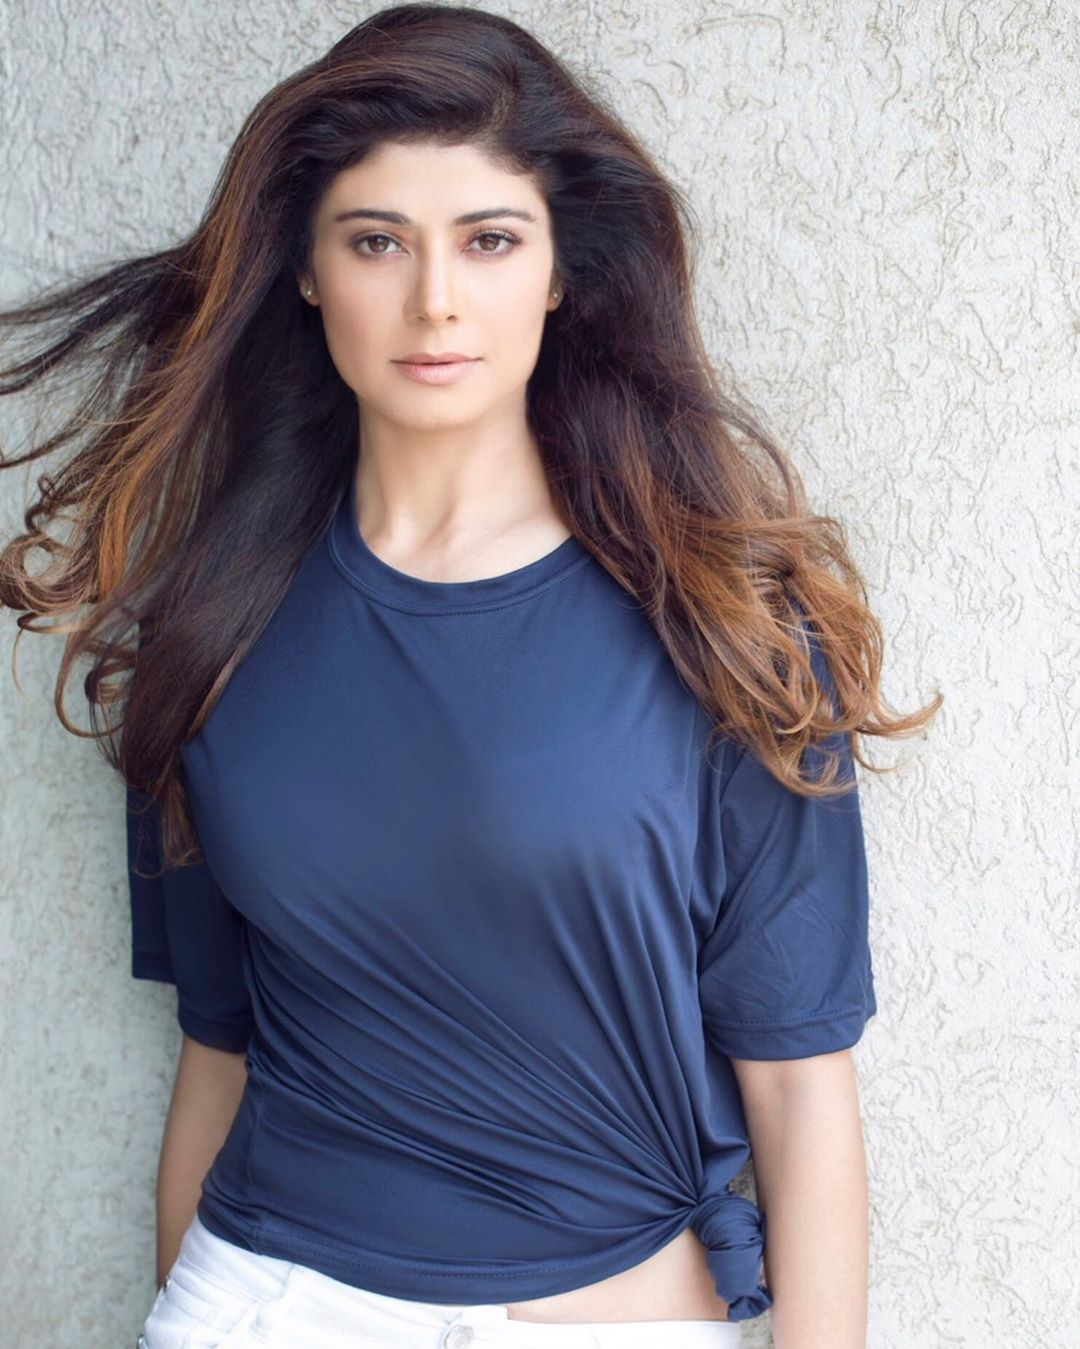 pooja batra love story, divorce and marriage